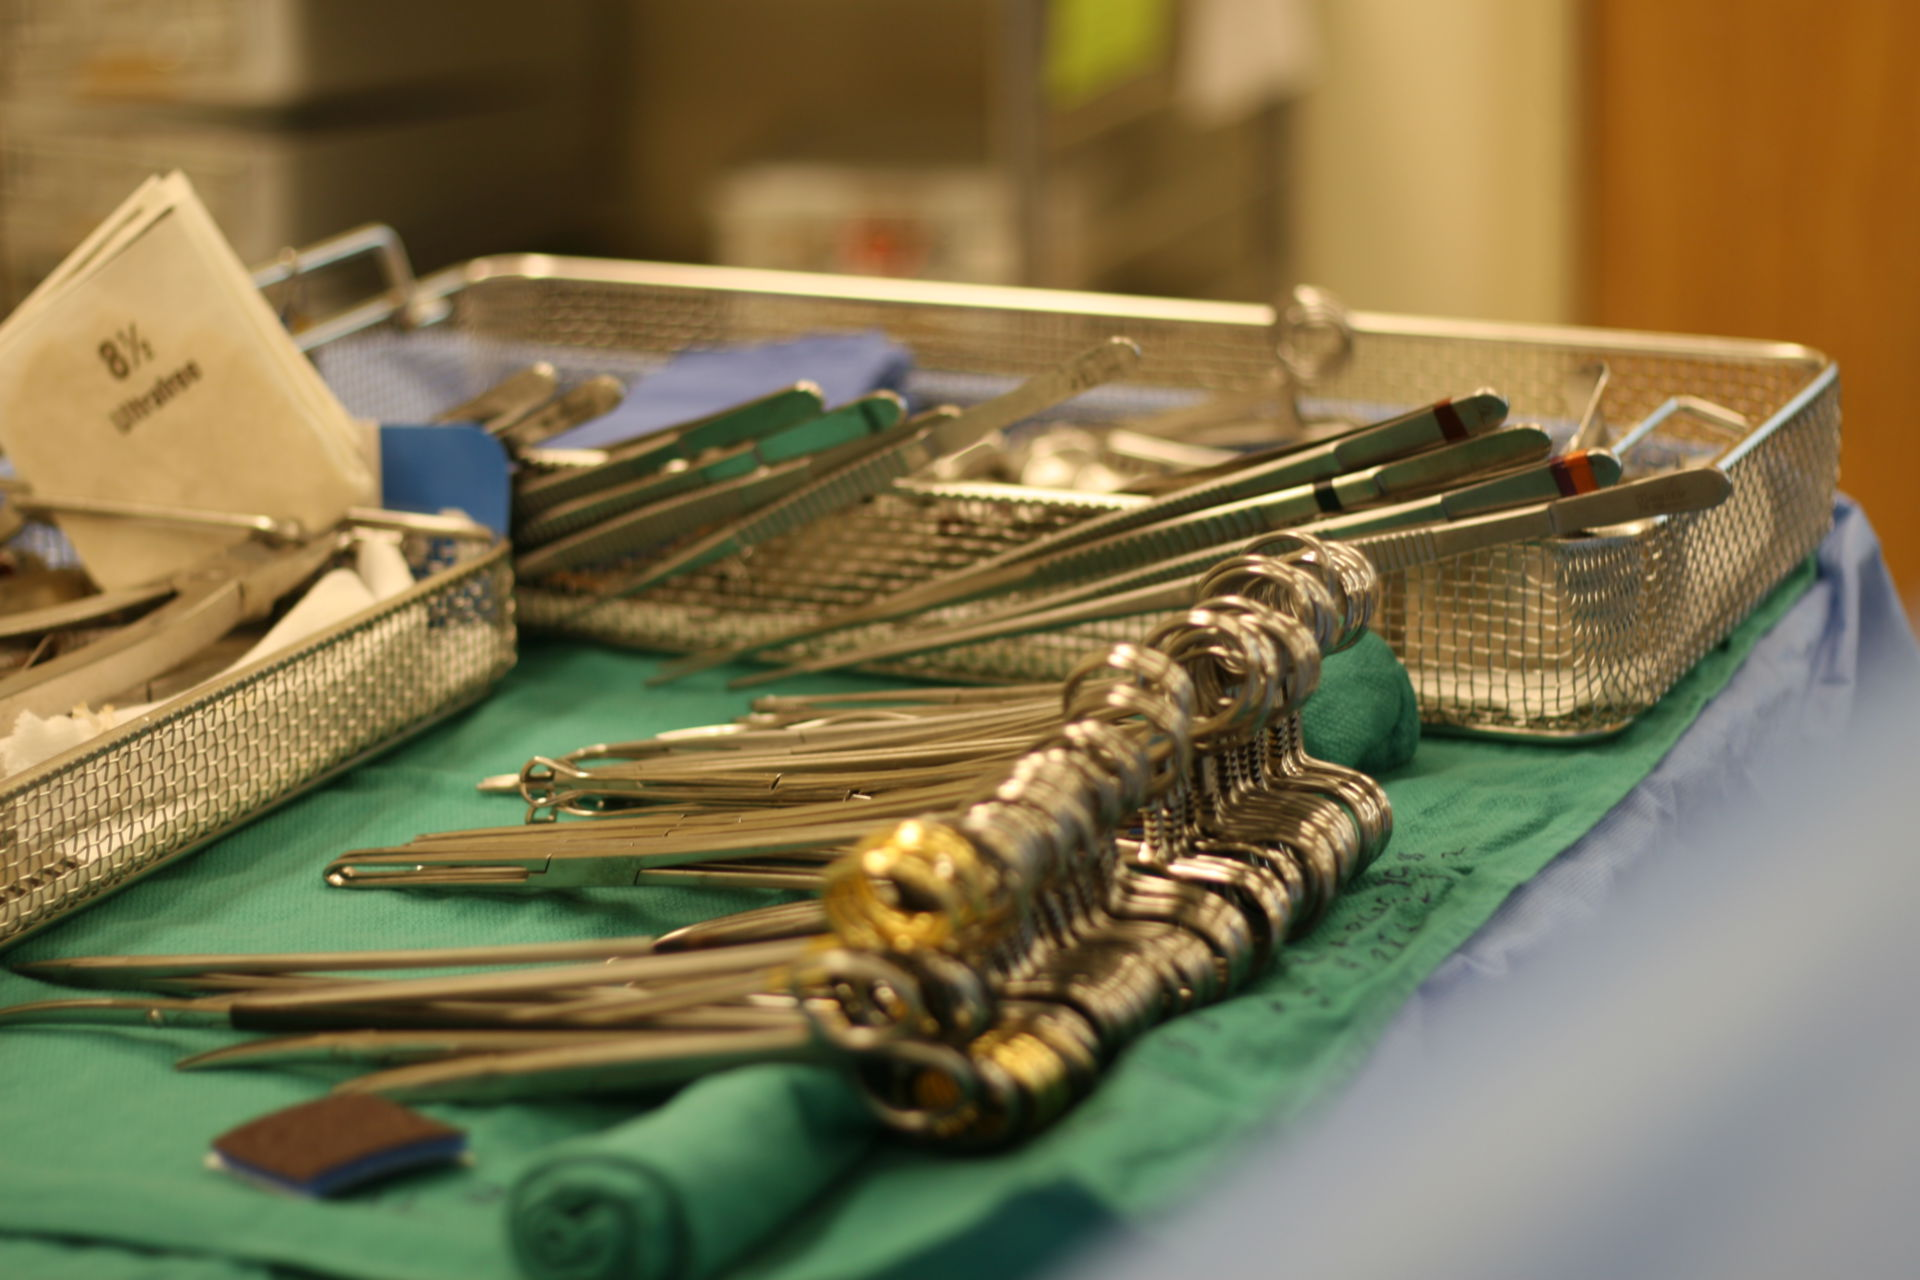 Instruments in the operating room